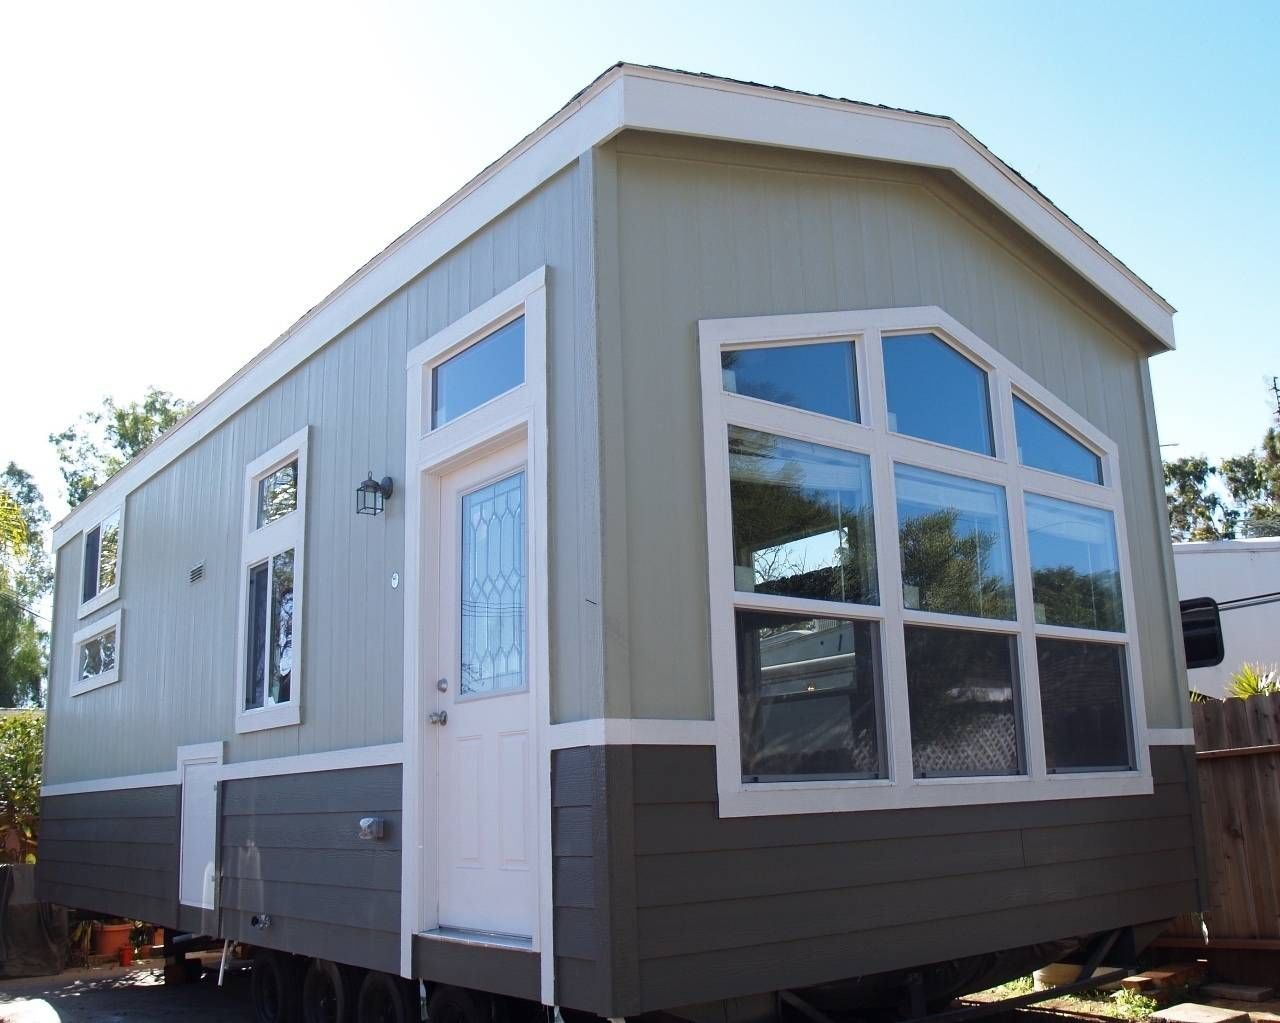 Check out this 2019 Instant Mobile House Cozy Beach Loft ... on mobile media browser, party in the park, feather river oroville ca park, tiny house on wheels park, mobile az, mobile homes with garages, port aventura spain theme park, sacramento water park, business park, create your own theme park, world trade park, mobile homes history, mobile games, rv park, clear lake park, mobile homes in arkansas, midland texas water park, mobile homes clearwater fl, industrial park,